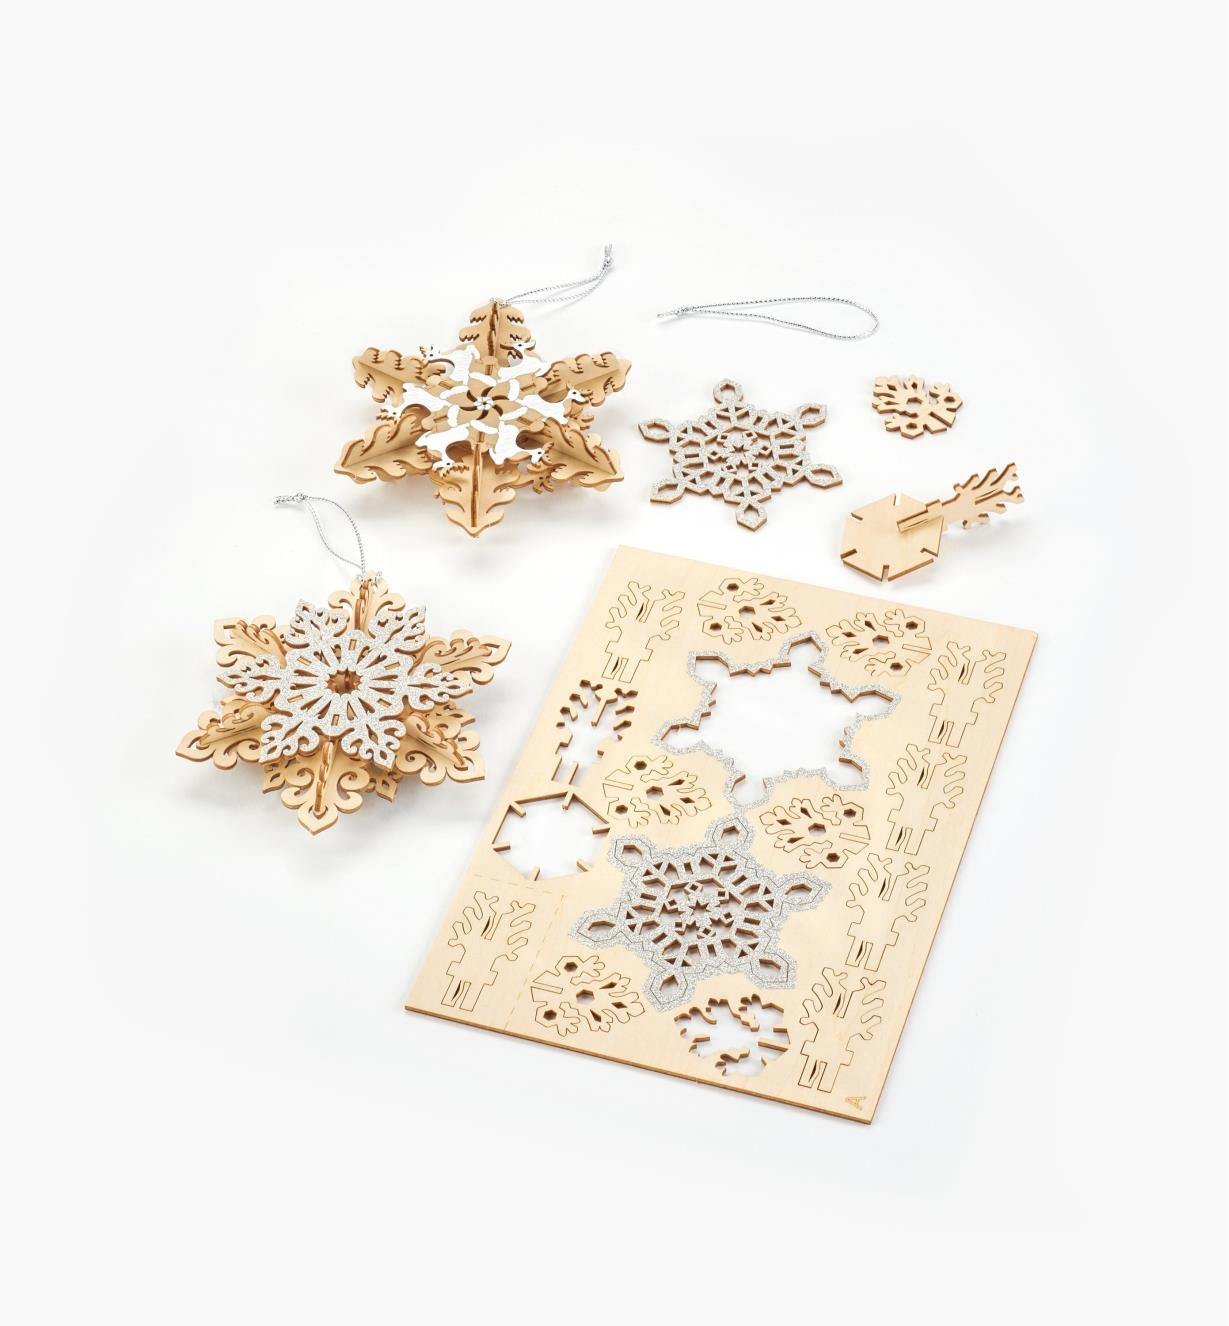 45K3994 - Wooden Snowflake Ornaments Kit